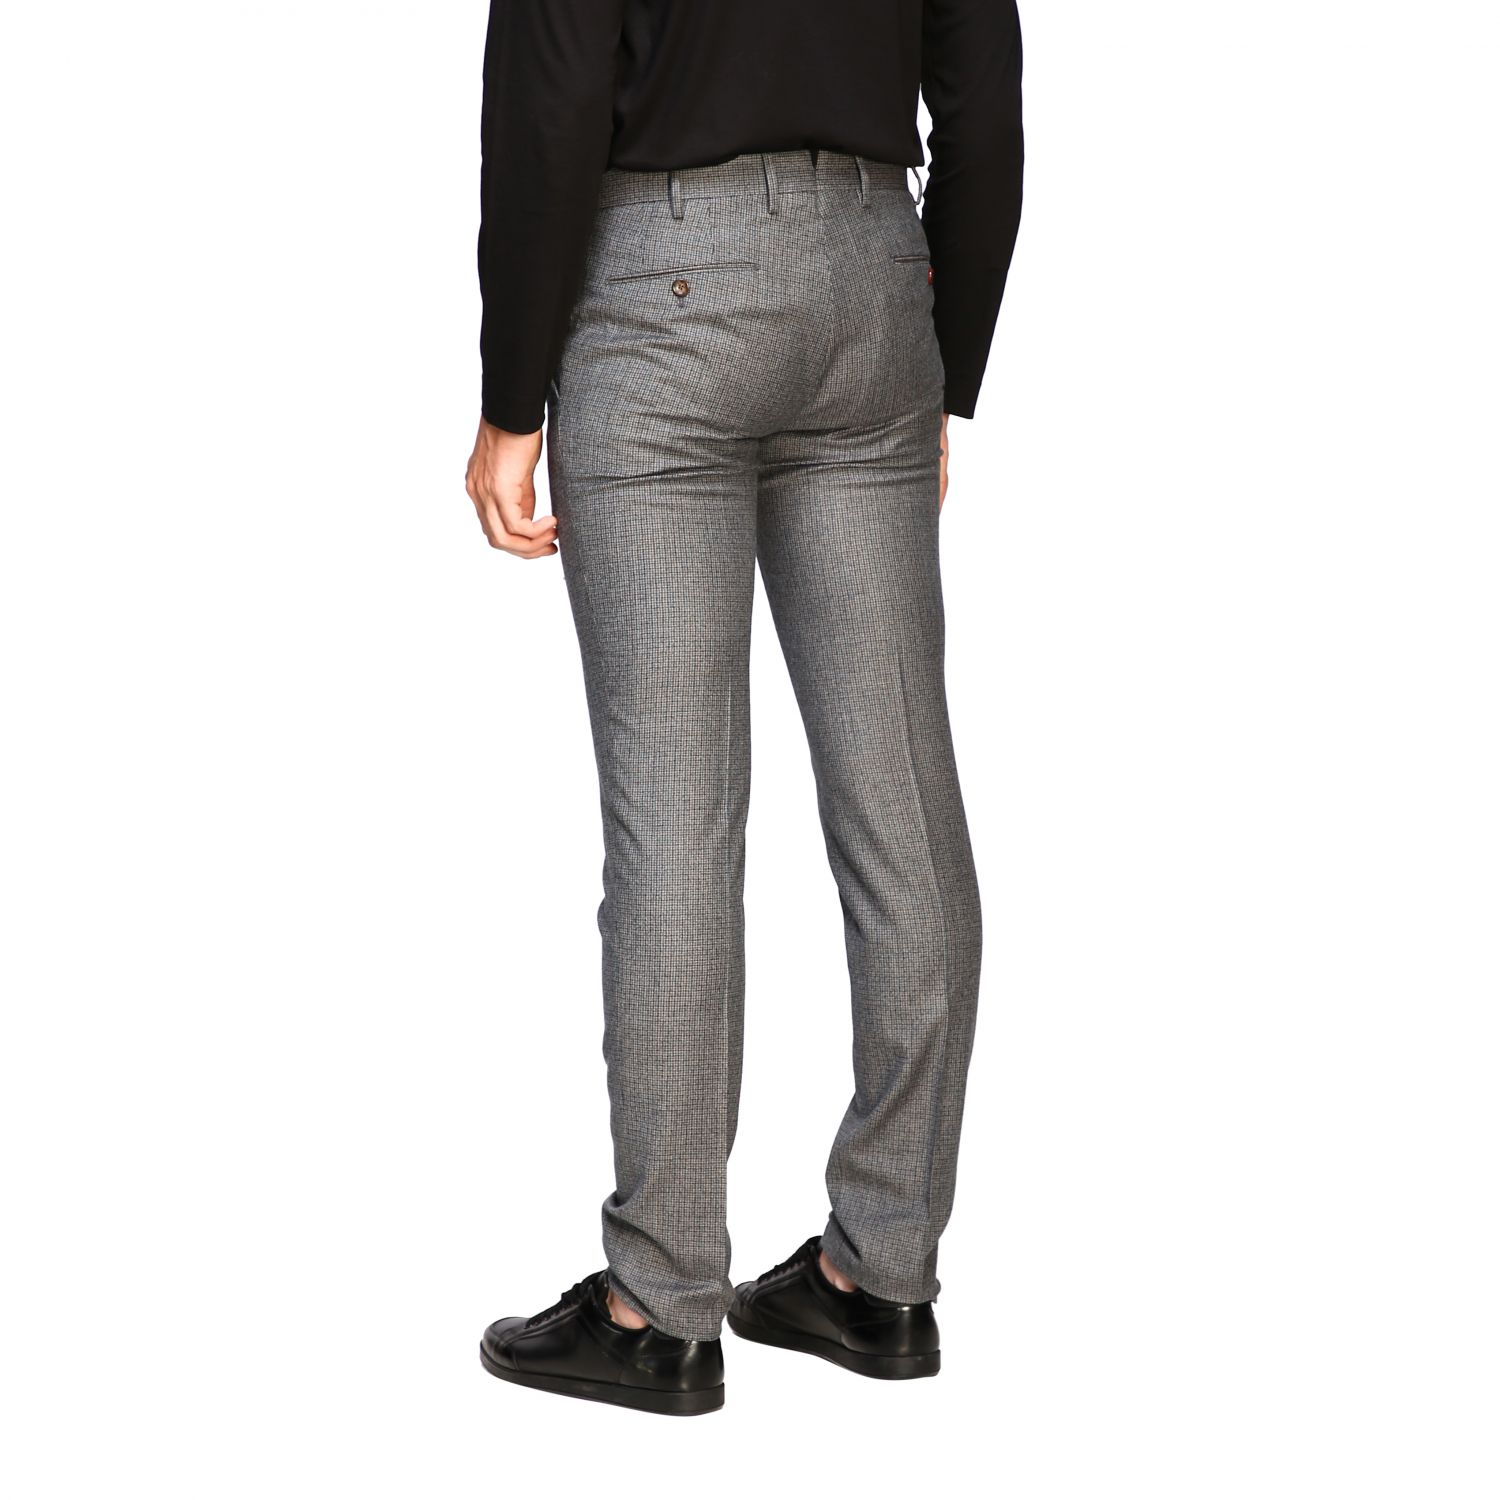 Trousers Pt: Trousers men Pt grey 3